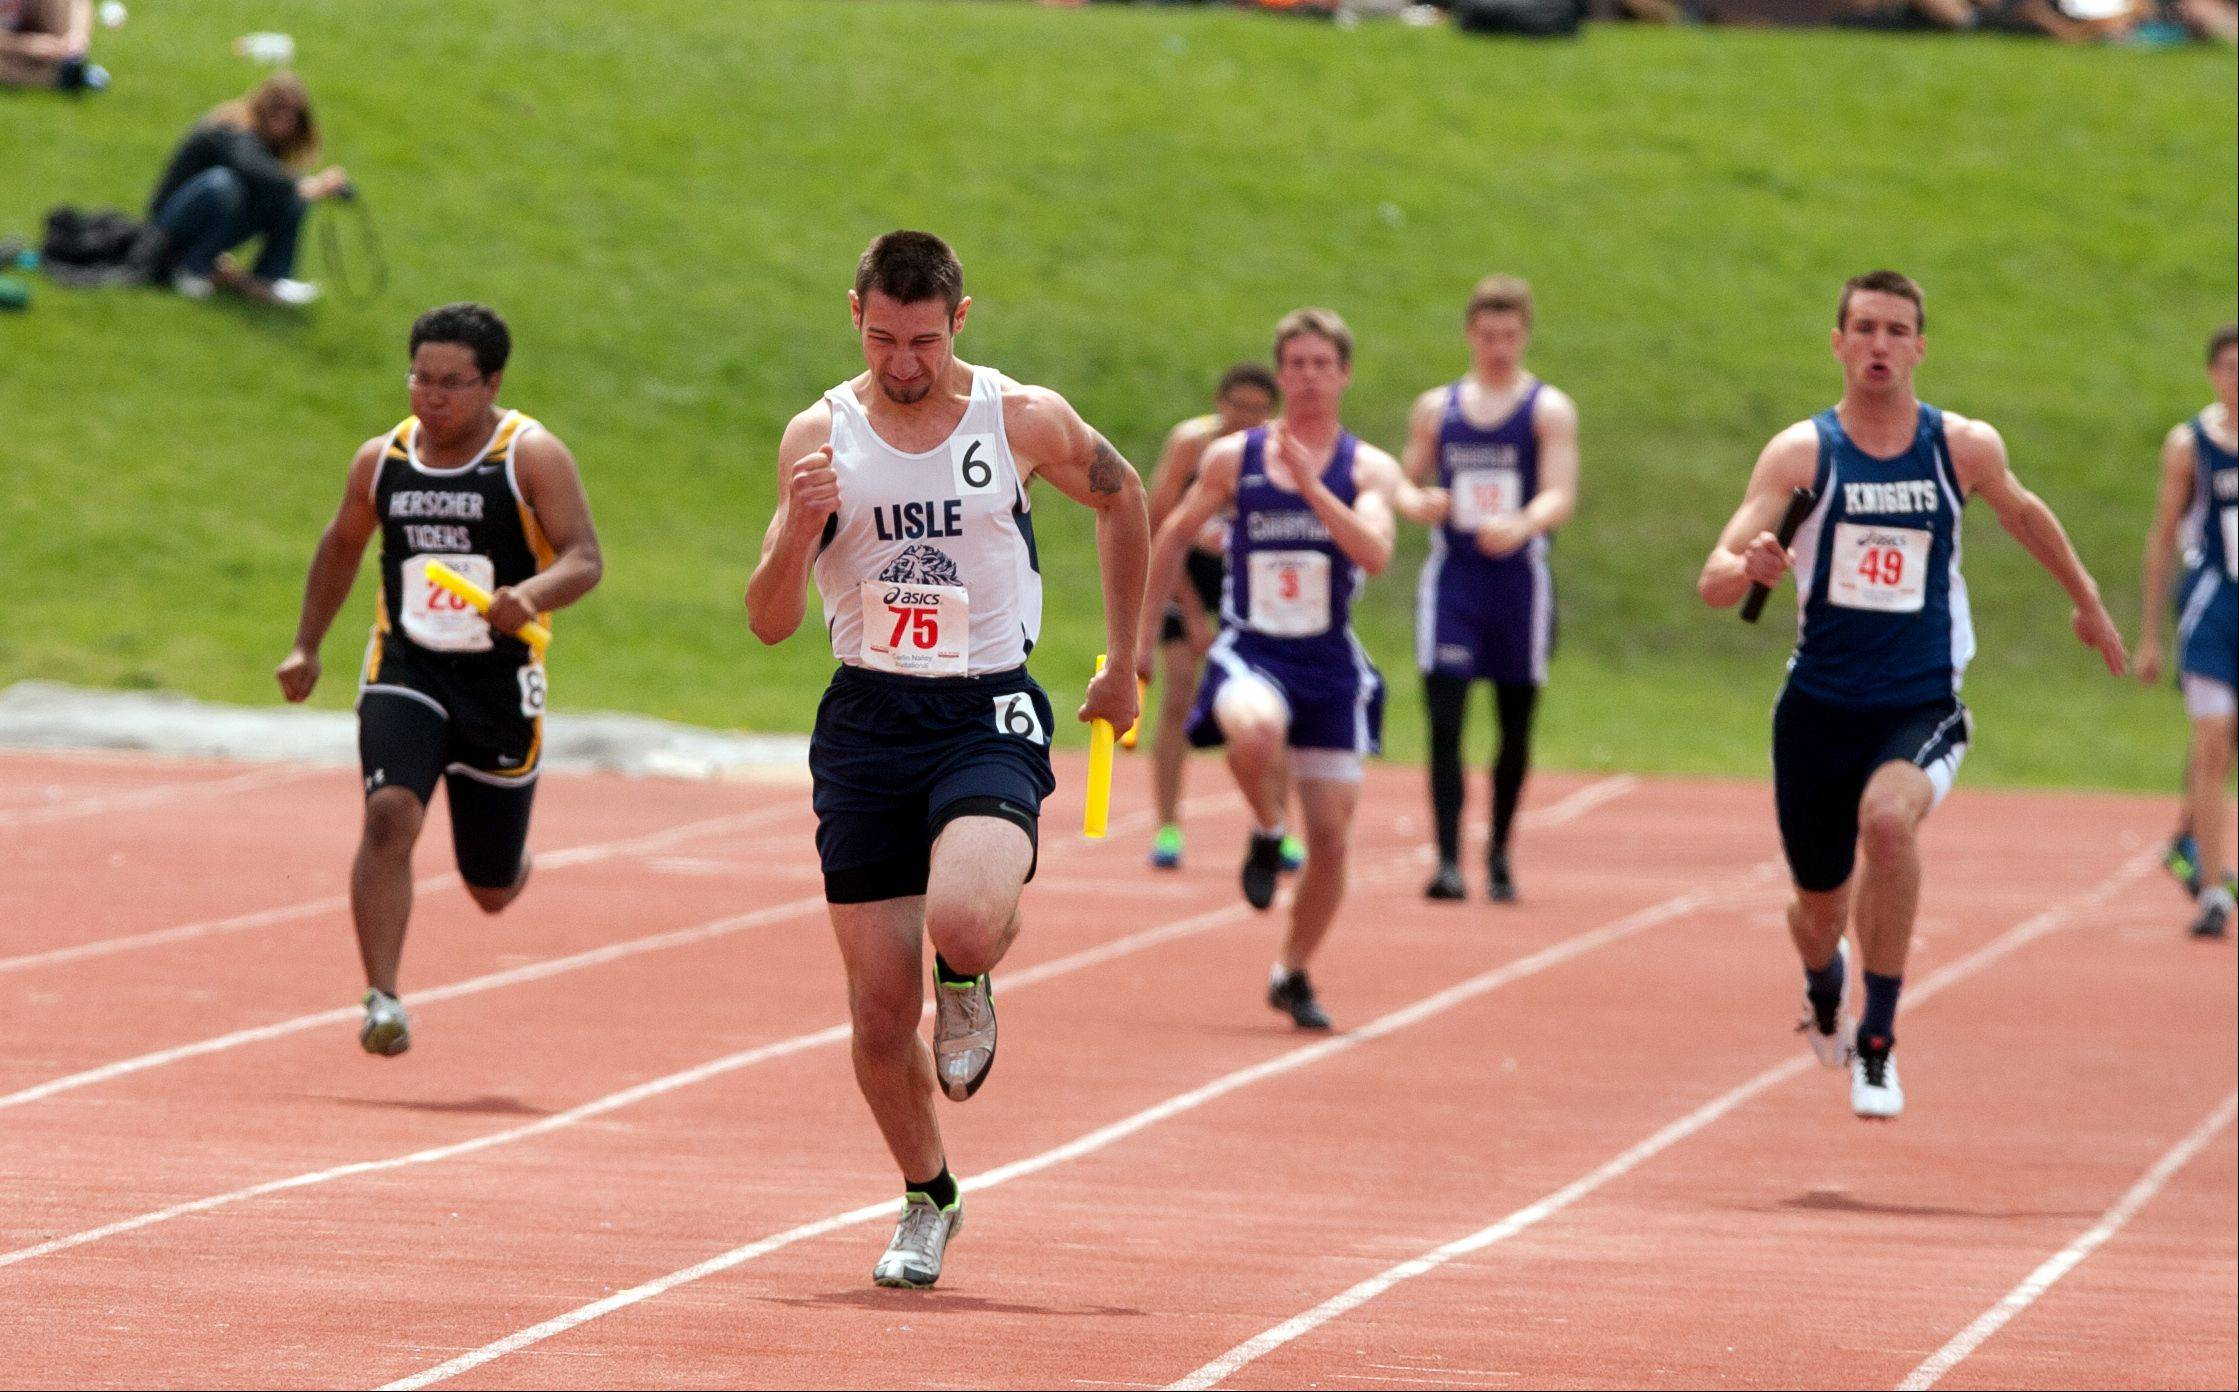 Lisle's Nick Rizzotti anchors a 4x100 meter relay win during the 46th annual Carlin Nalley Boys� Track Invitational at Benedictine University in Lisle.